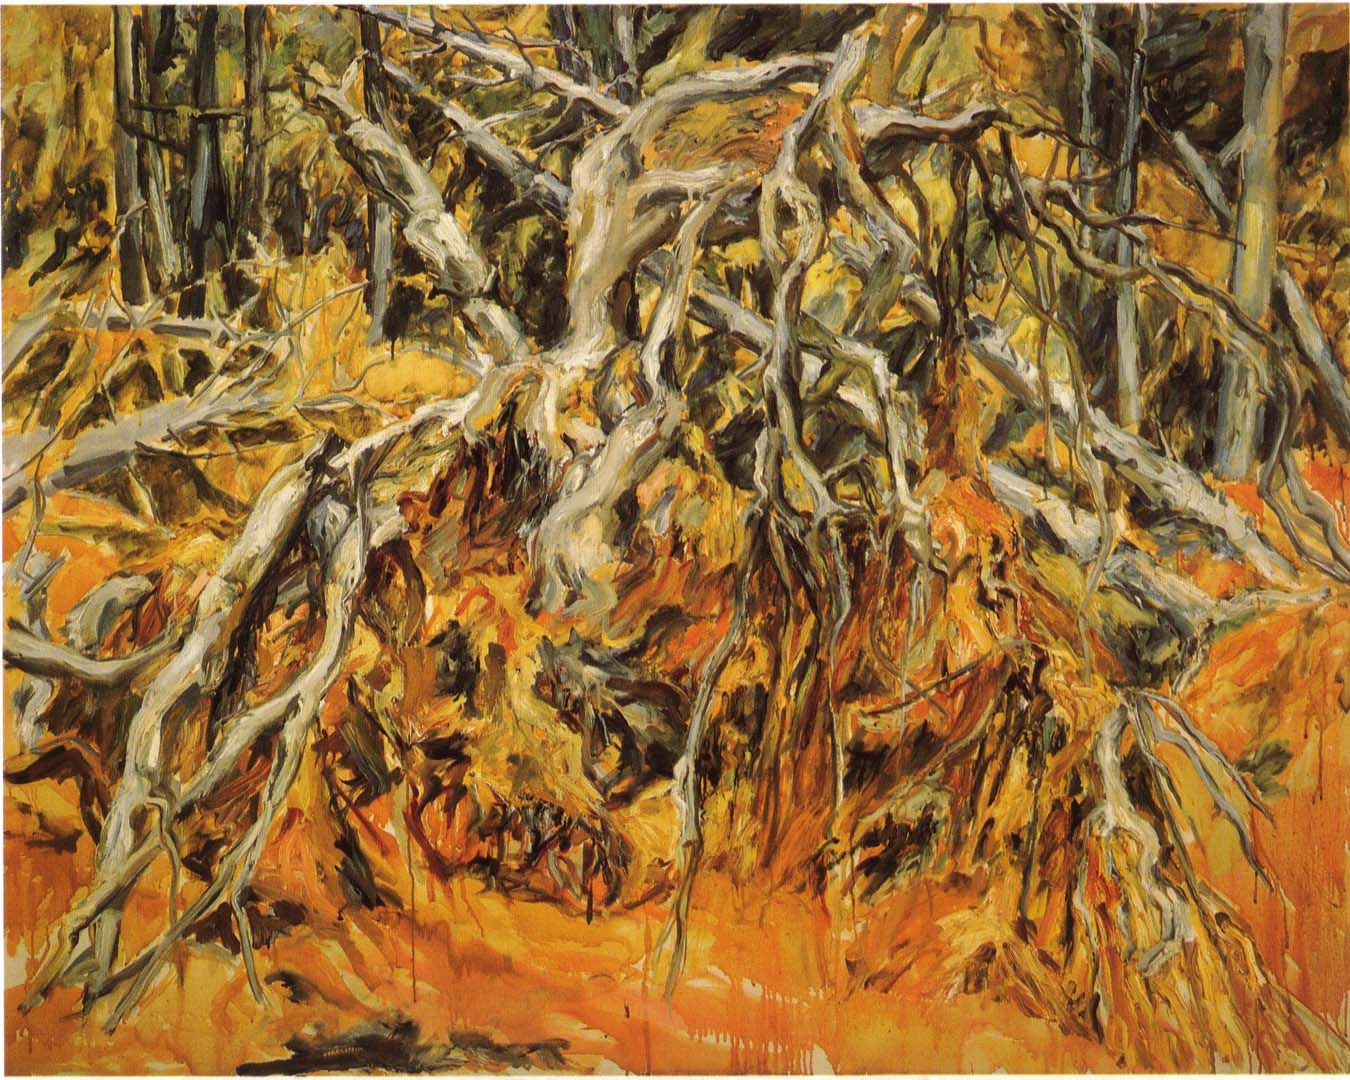 1957 Uprooted Tree Oil on Canvas 48 x 60